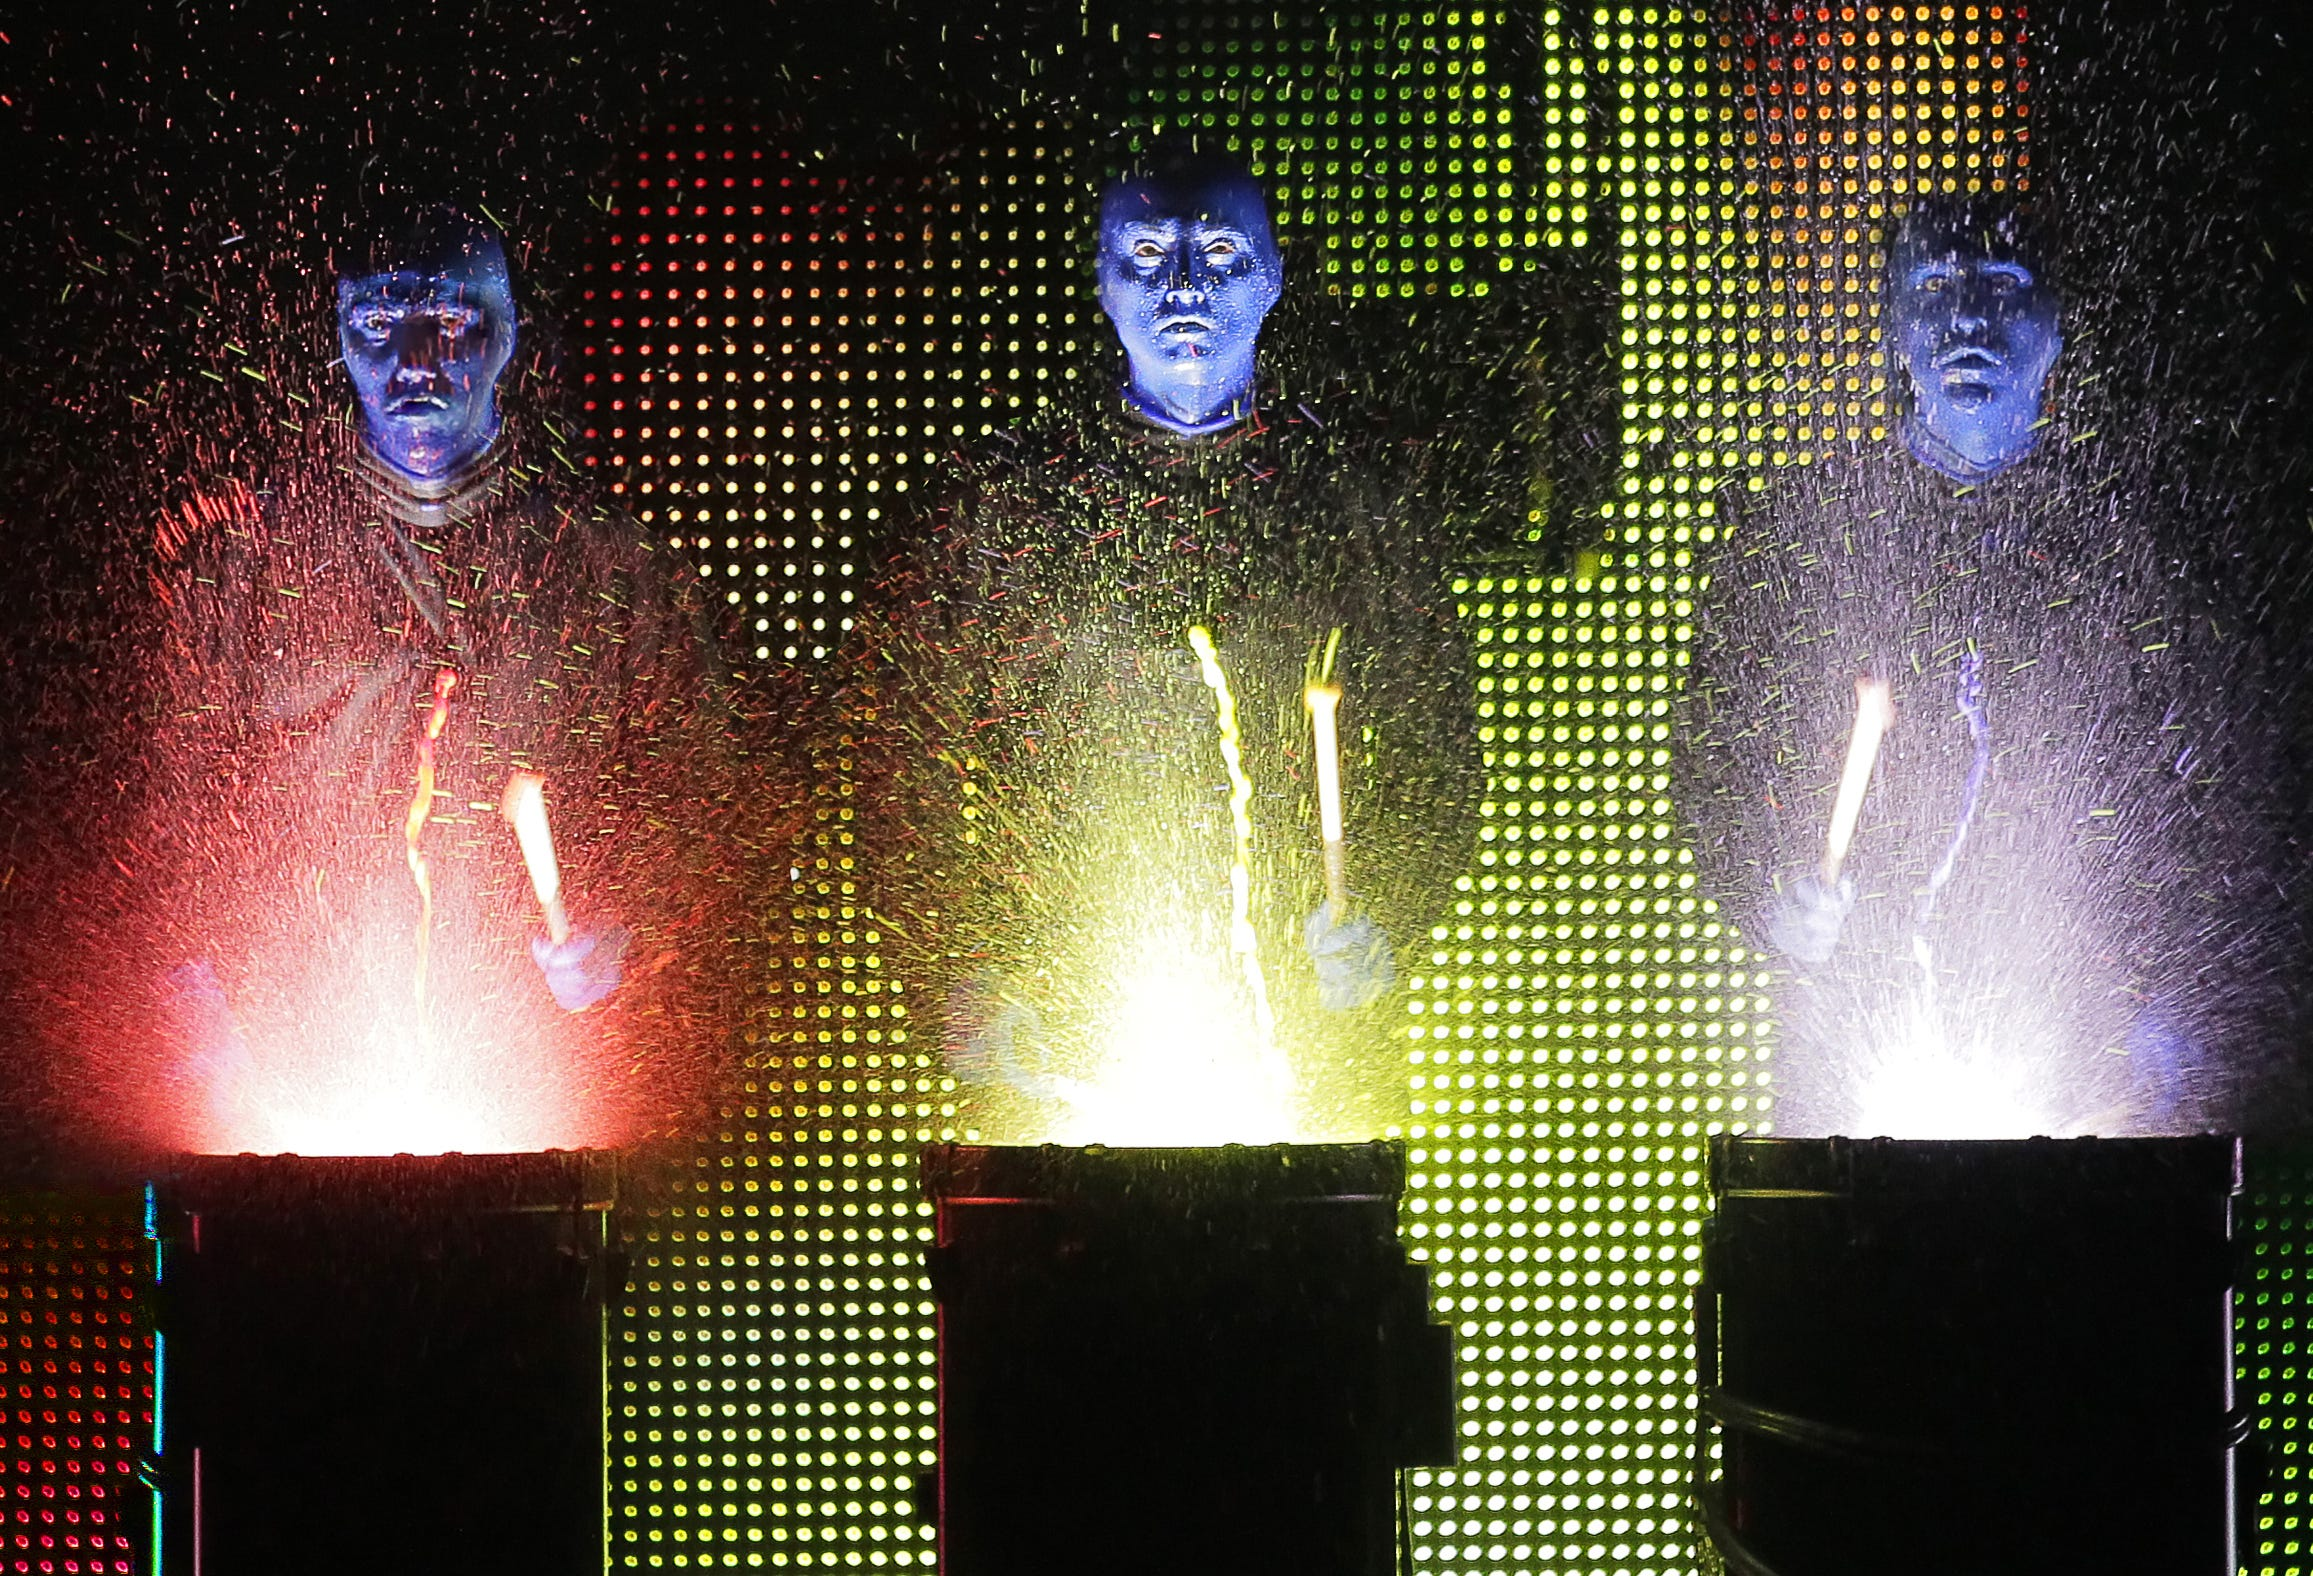 Blue Man Group performs Nov. 15-17, 2019, as part of ASU Gammage's Broadway Across America season.